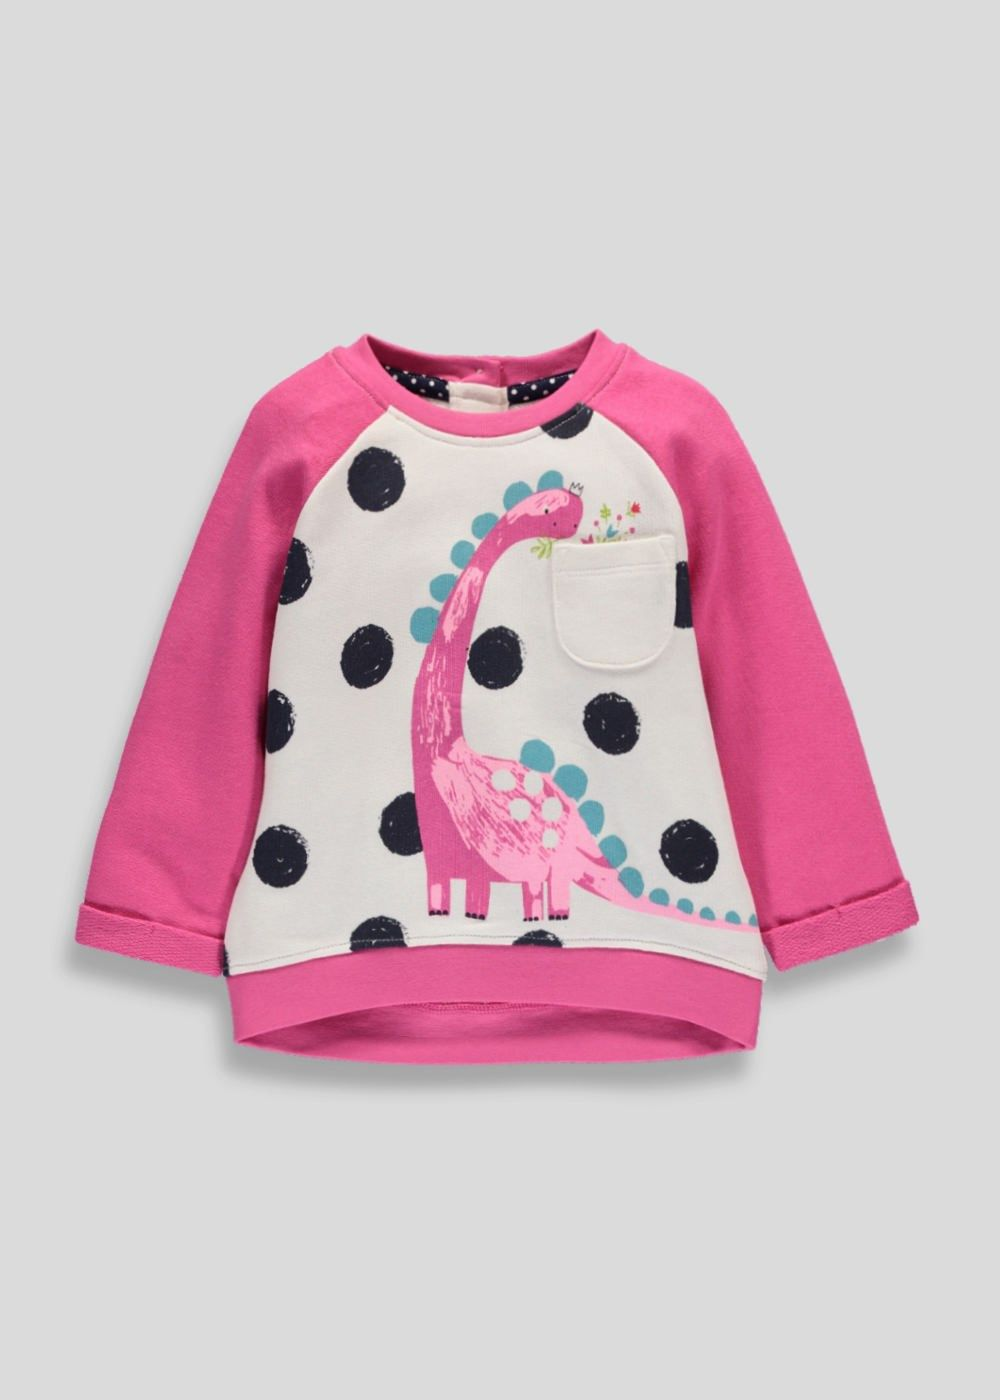 Dresses Gentle Baby Girl Dress Long Sleeved Clothes New Autumn Toddler Infant Baby Dinosaur Pattern Mini Dresses Casual Newborn Baby Girl Dress